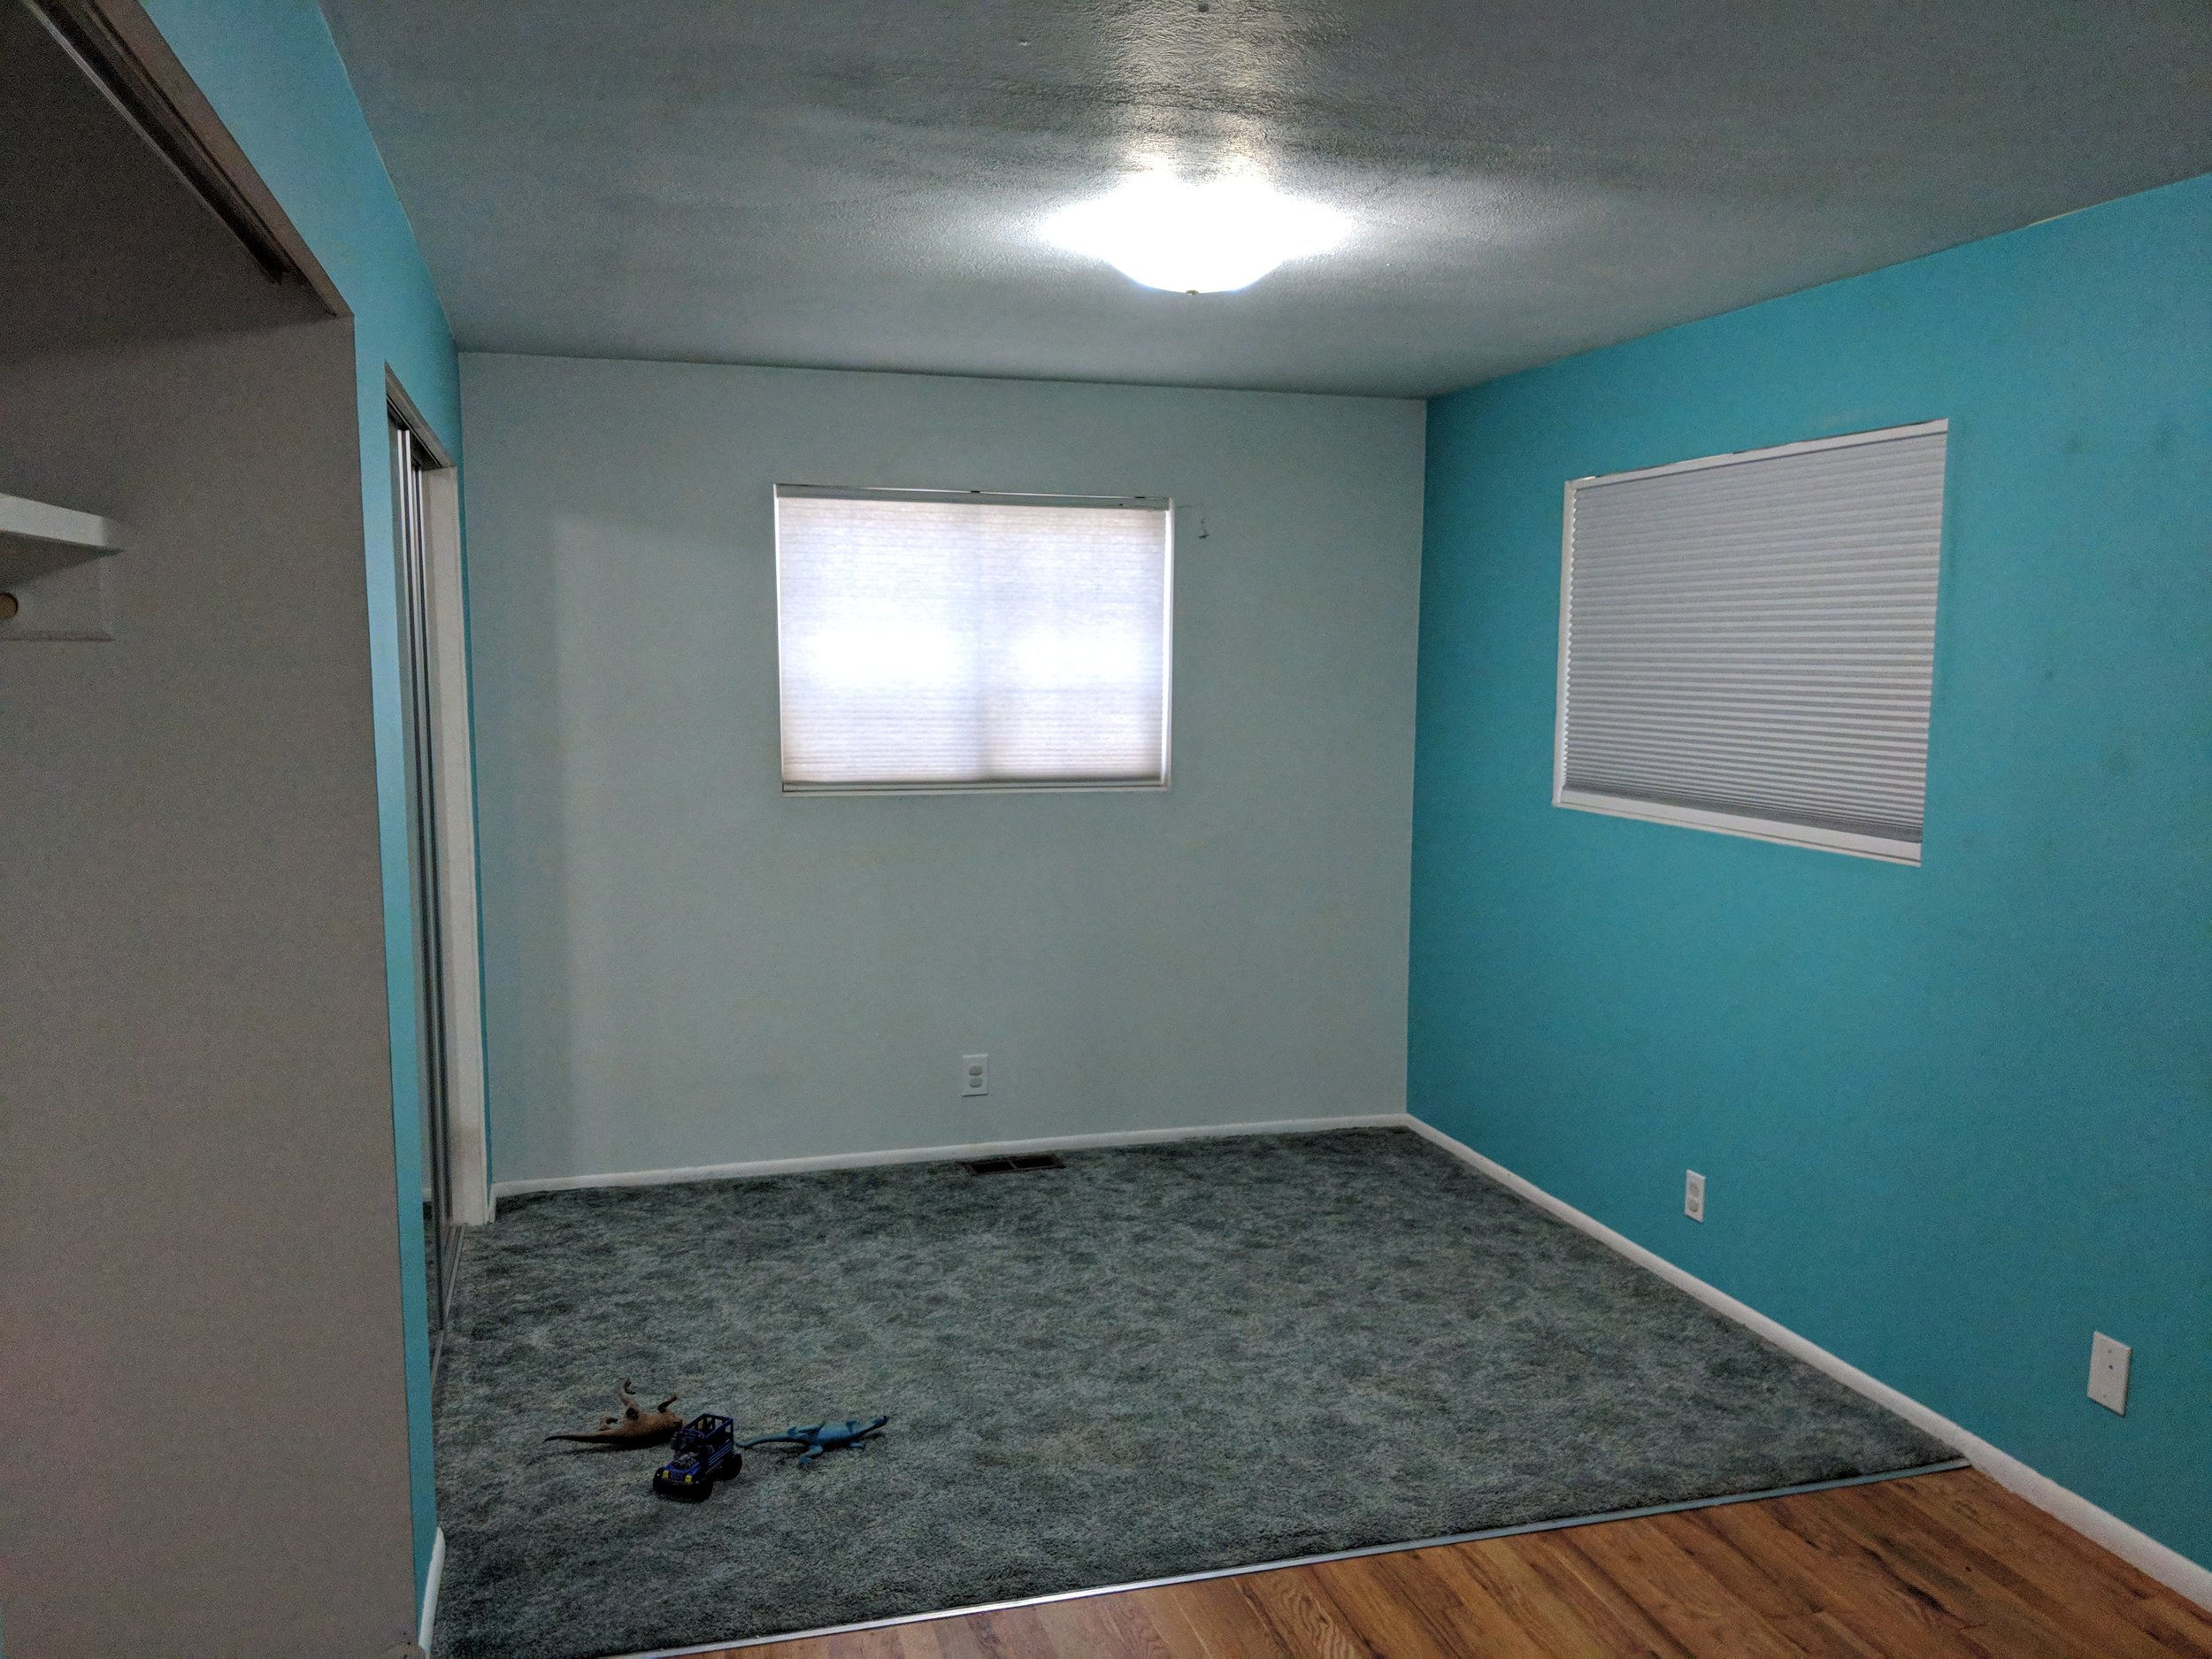 My future workspace! I'll be painting the walls first, that blue has got to go!